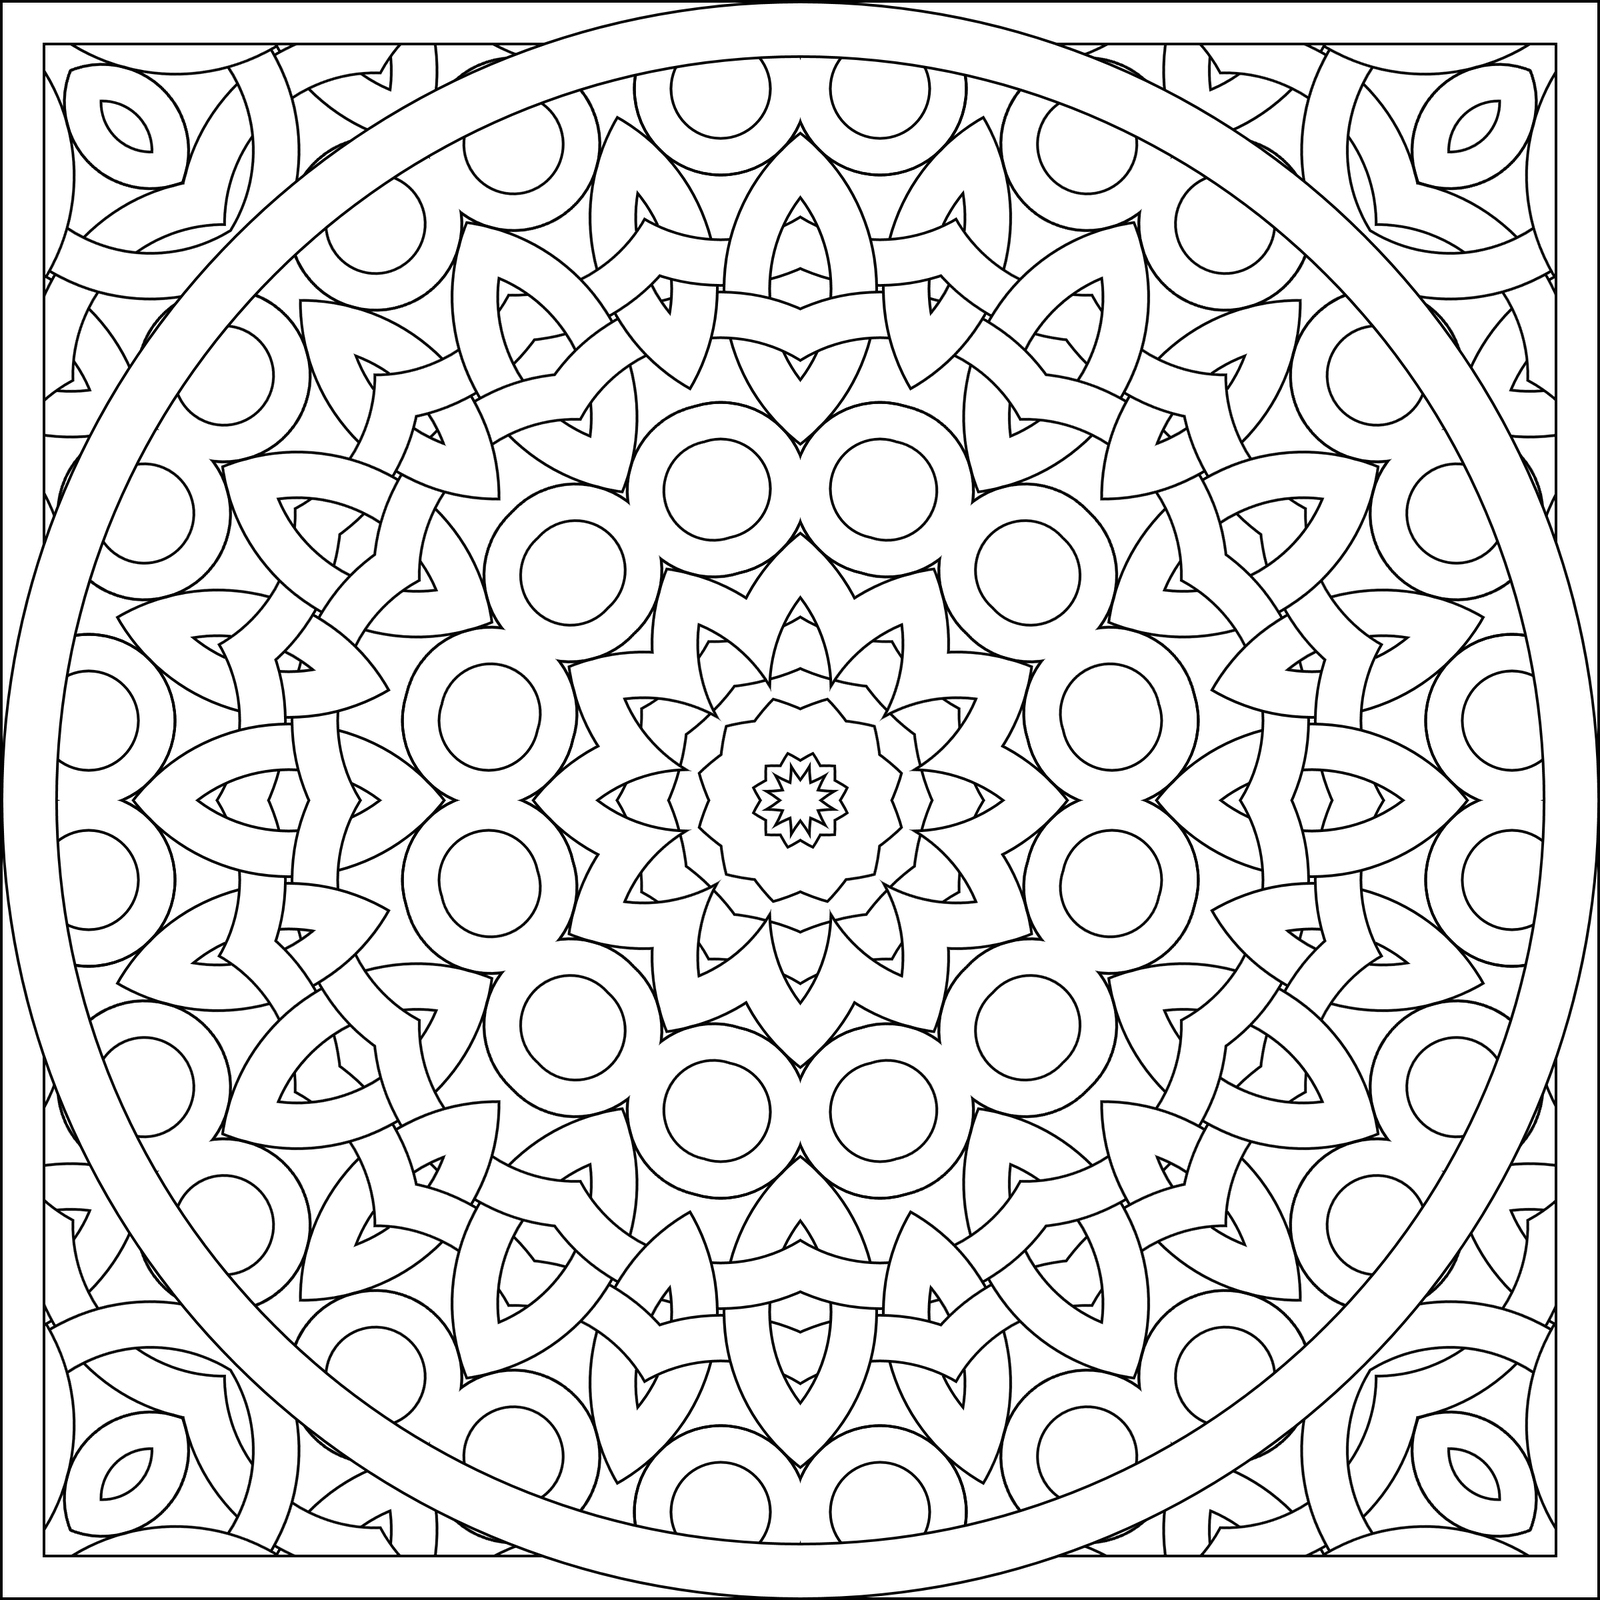 pattern coloring pages to print - photo#11